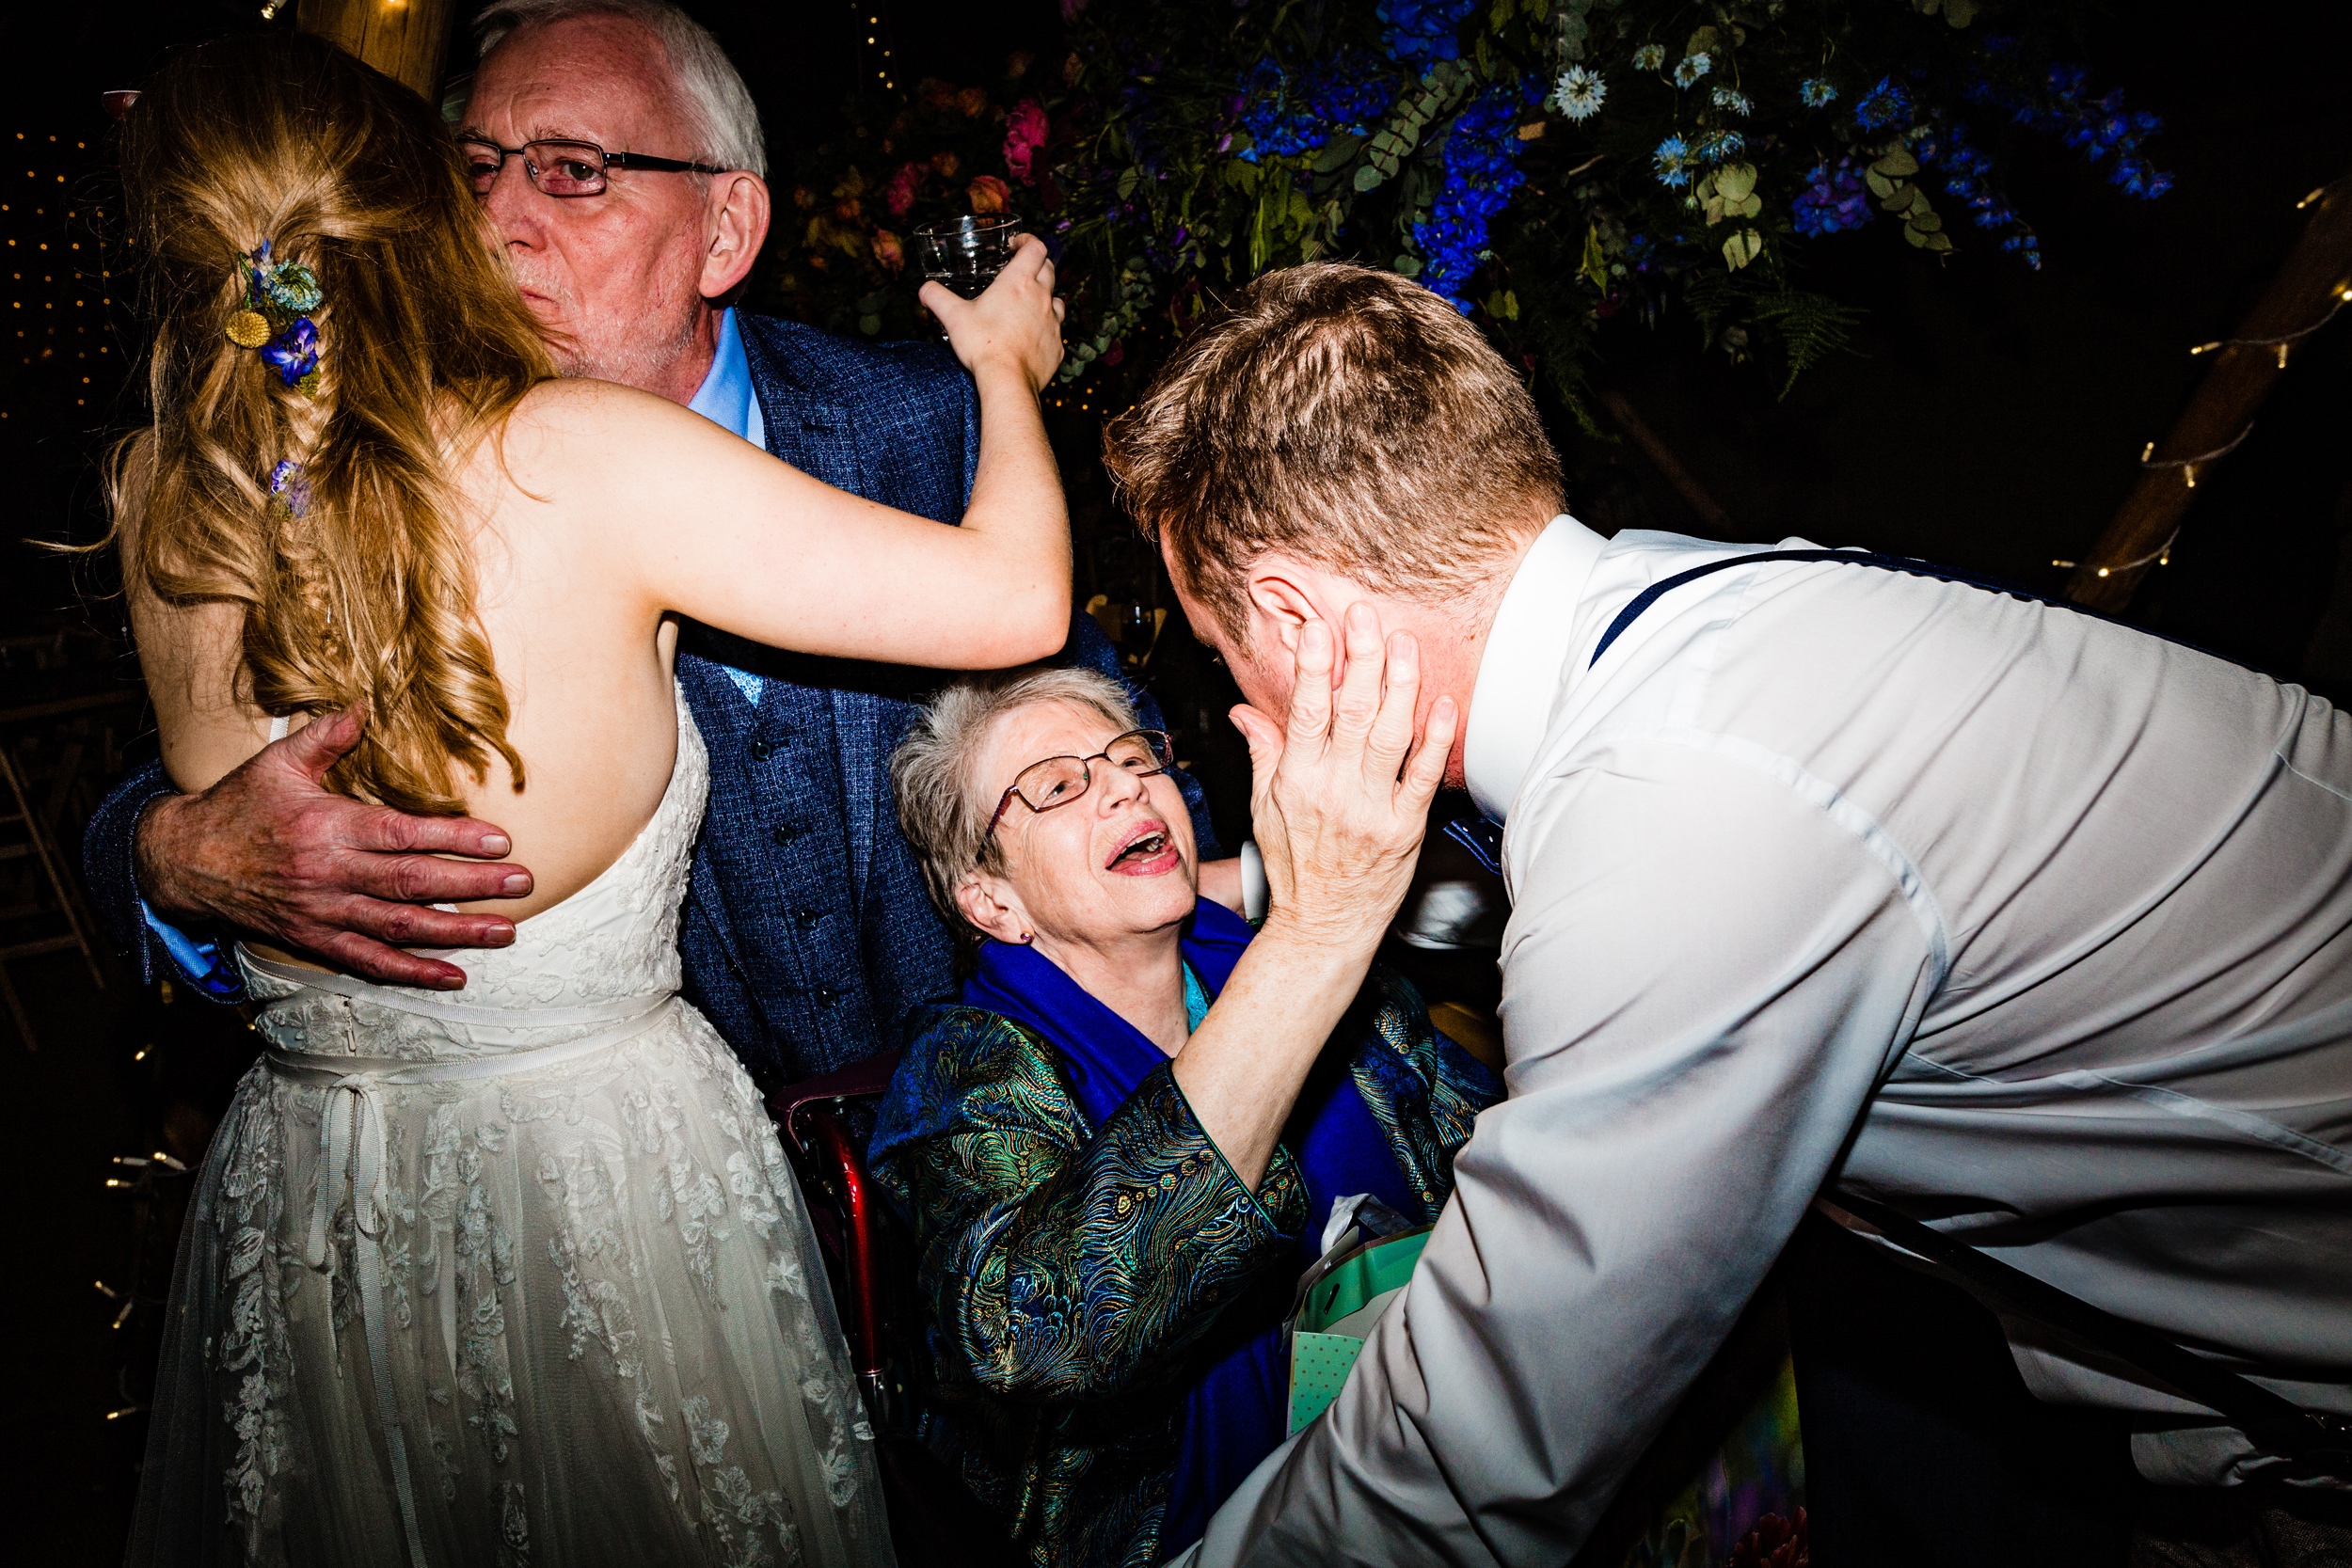 bride and groom say goodbye to grandparents at wedding reception. wildwood and eden wedding photography by emma and rich.